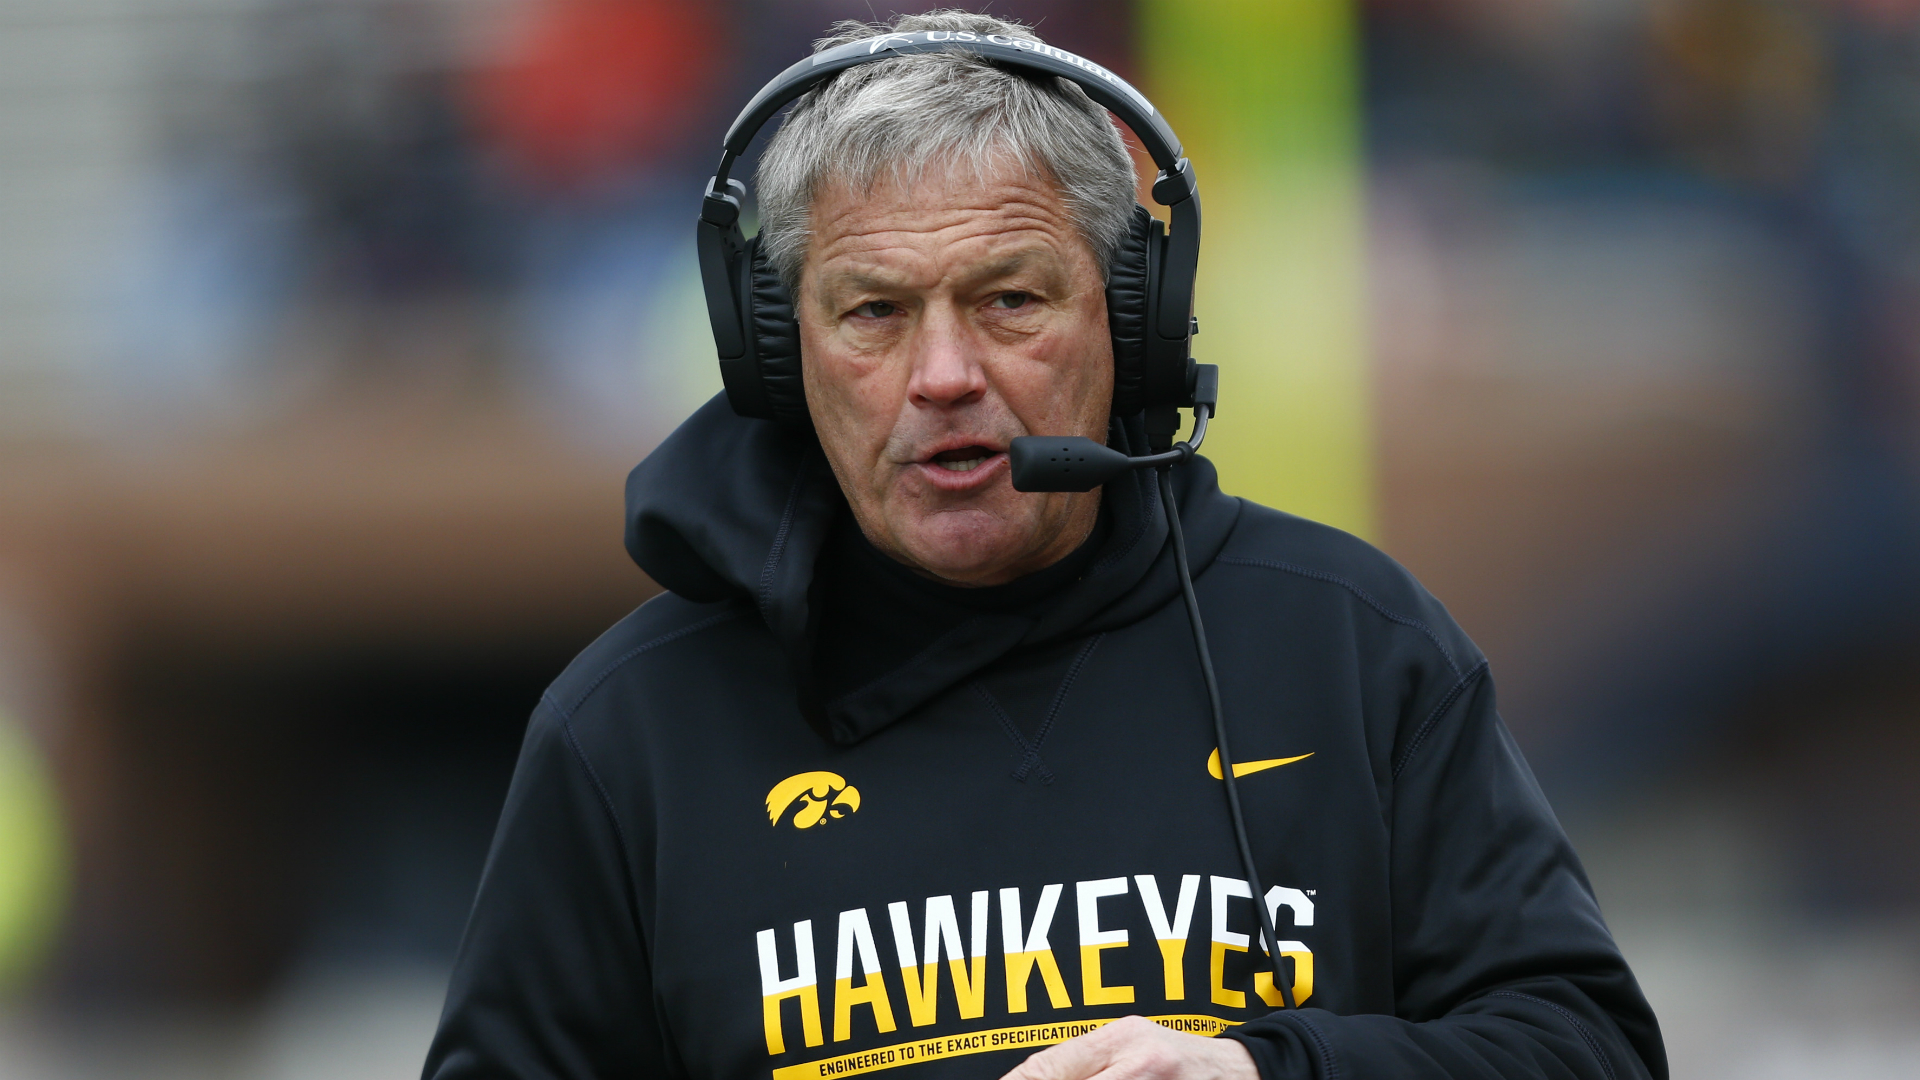 Iowa's Kirk Ferentz defends fans who booed Penn State injuries: 'Thought they smelled a rat'